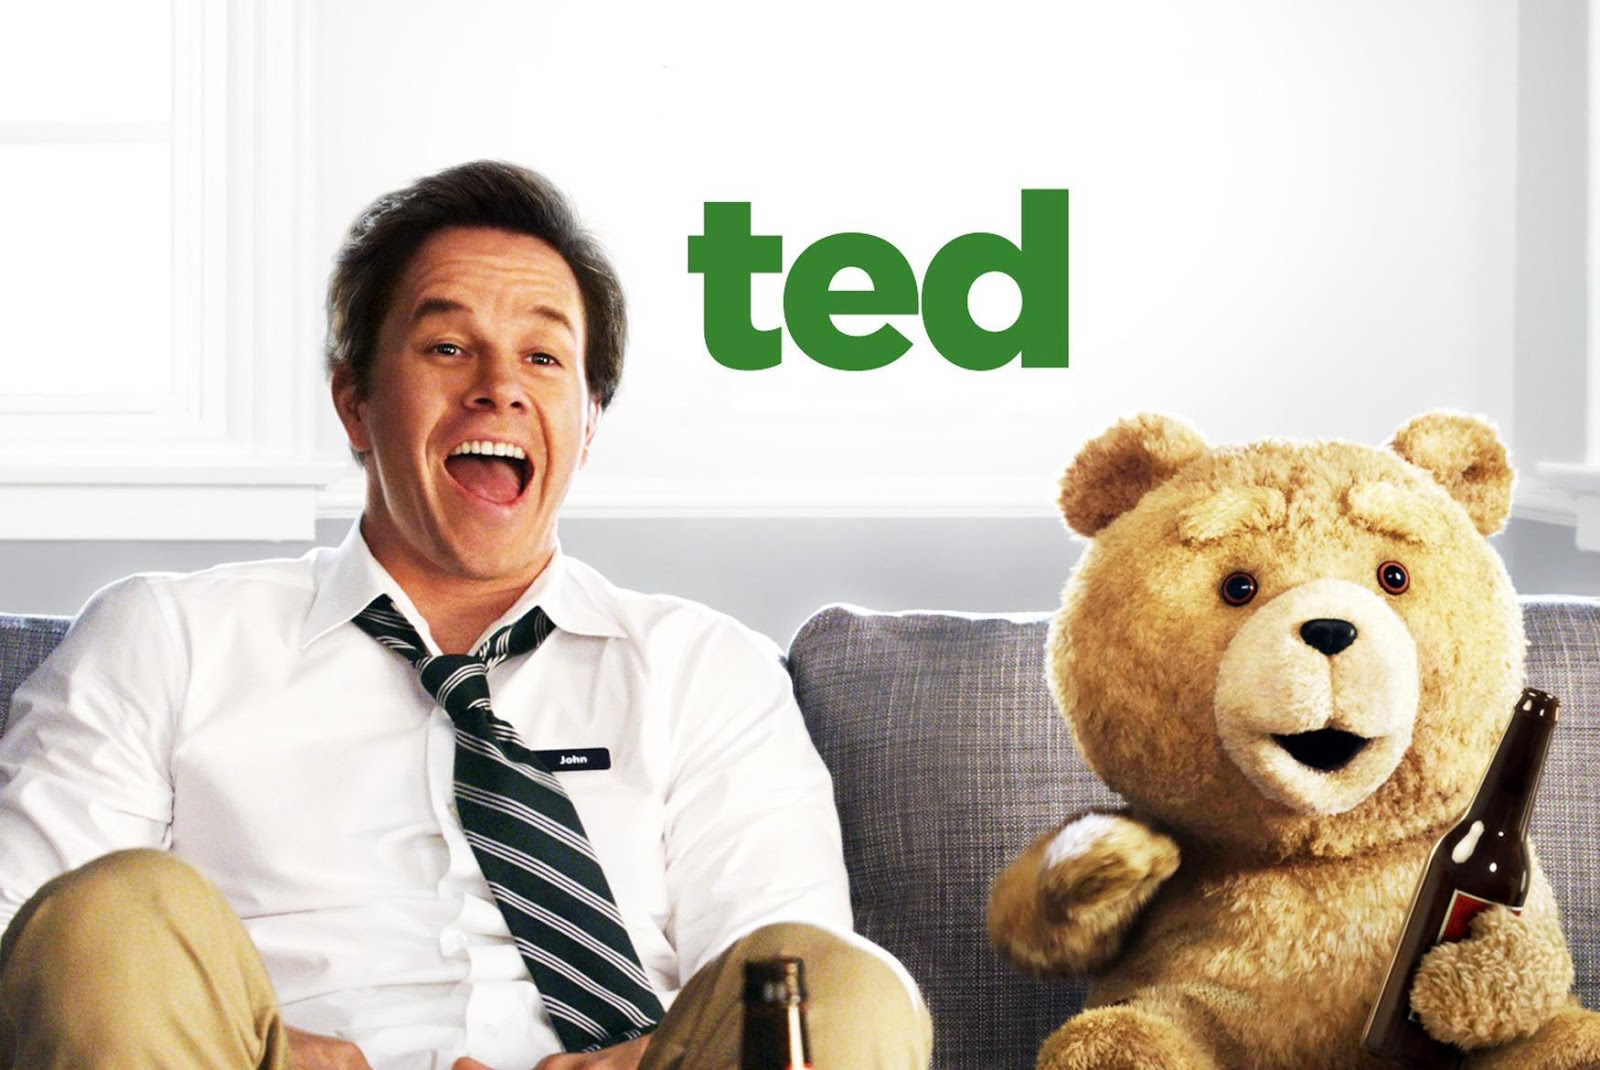 Ted (1)